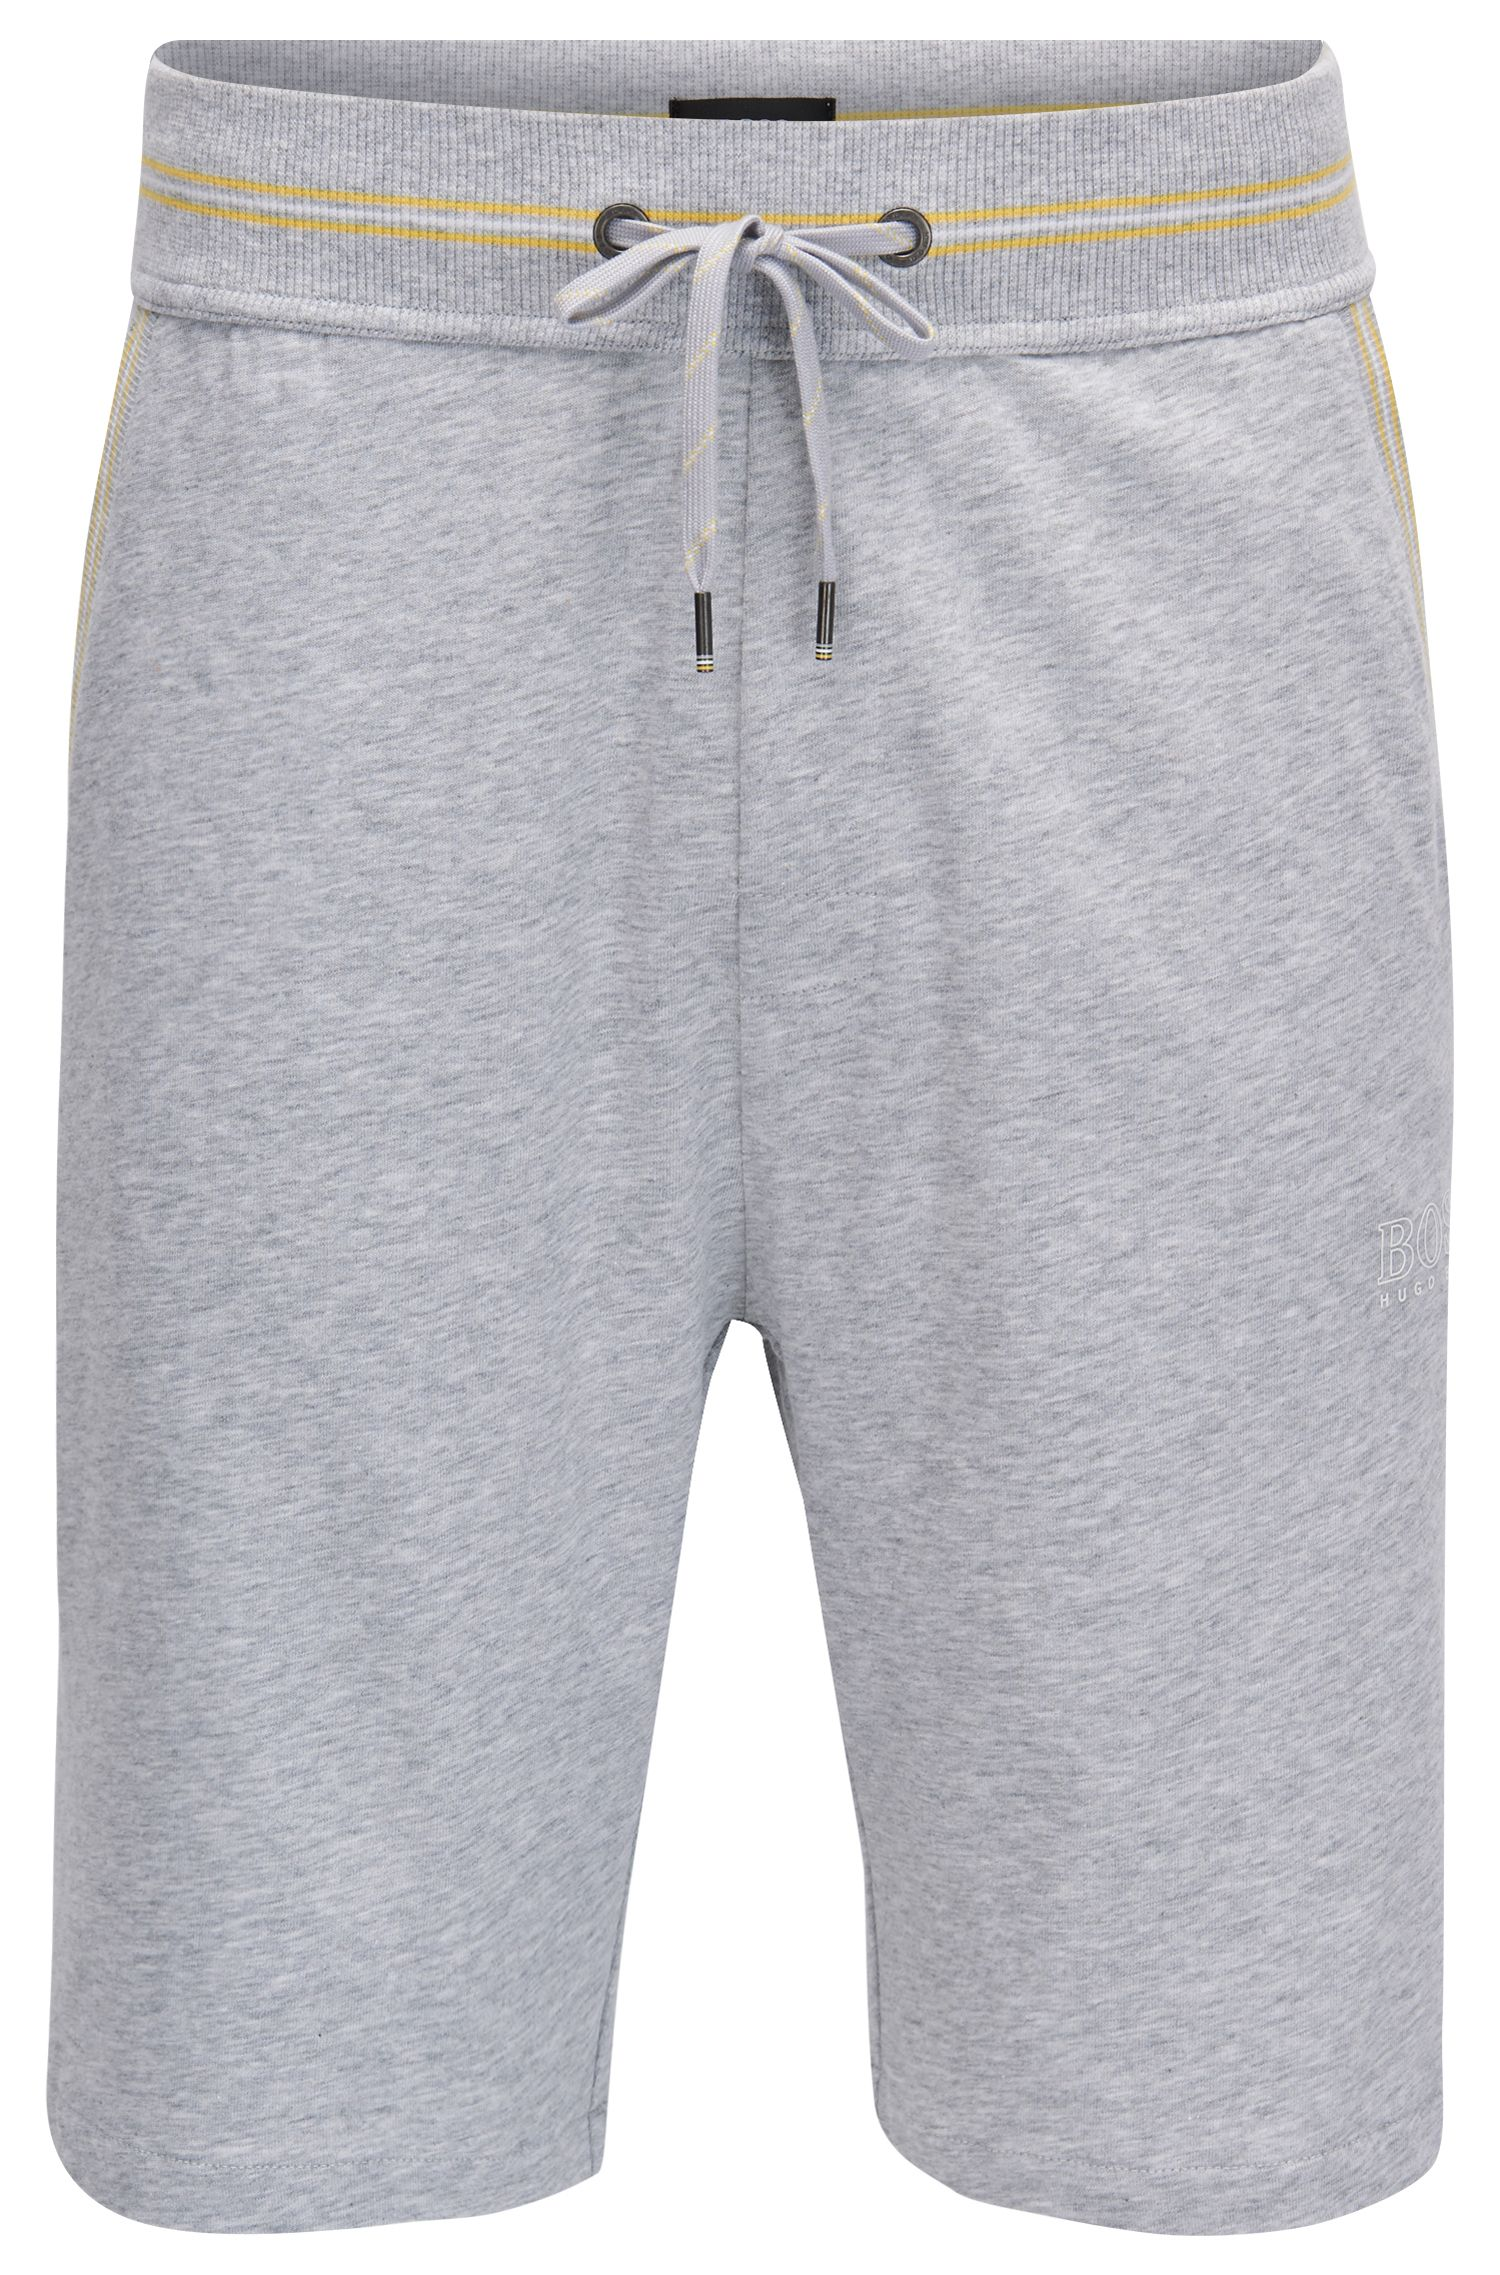 Single-jersey loungewear shorts with drawstring waist